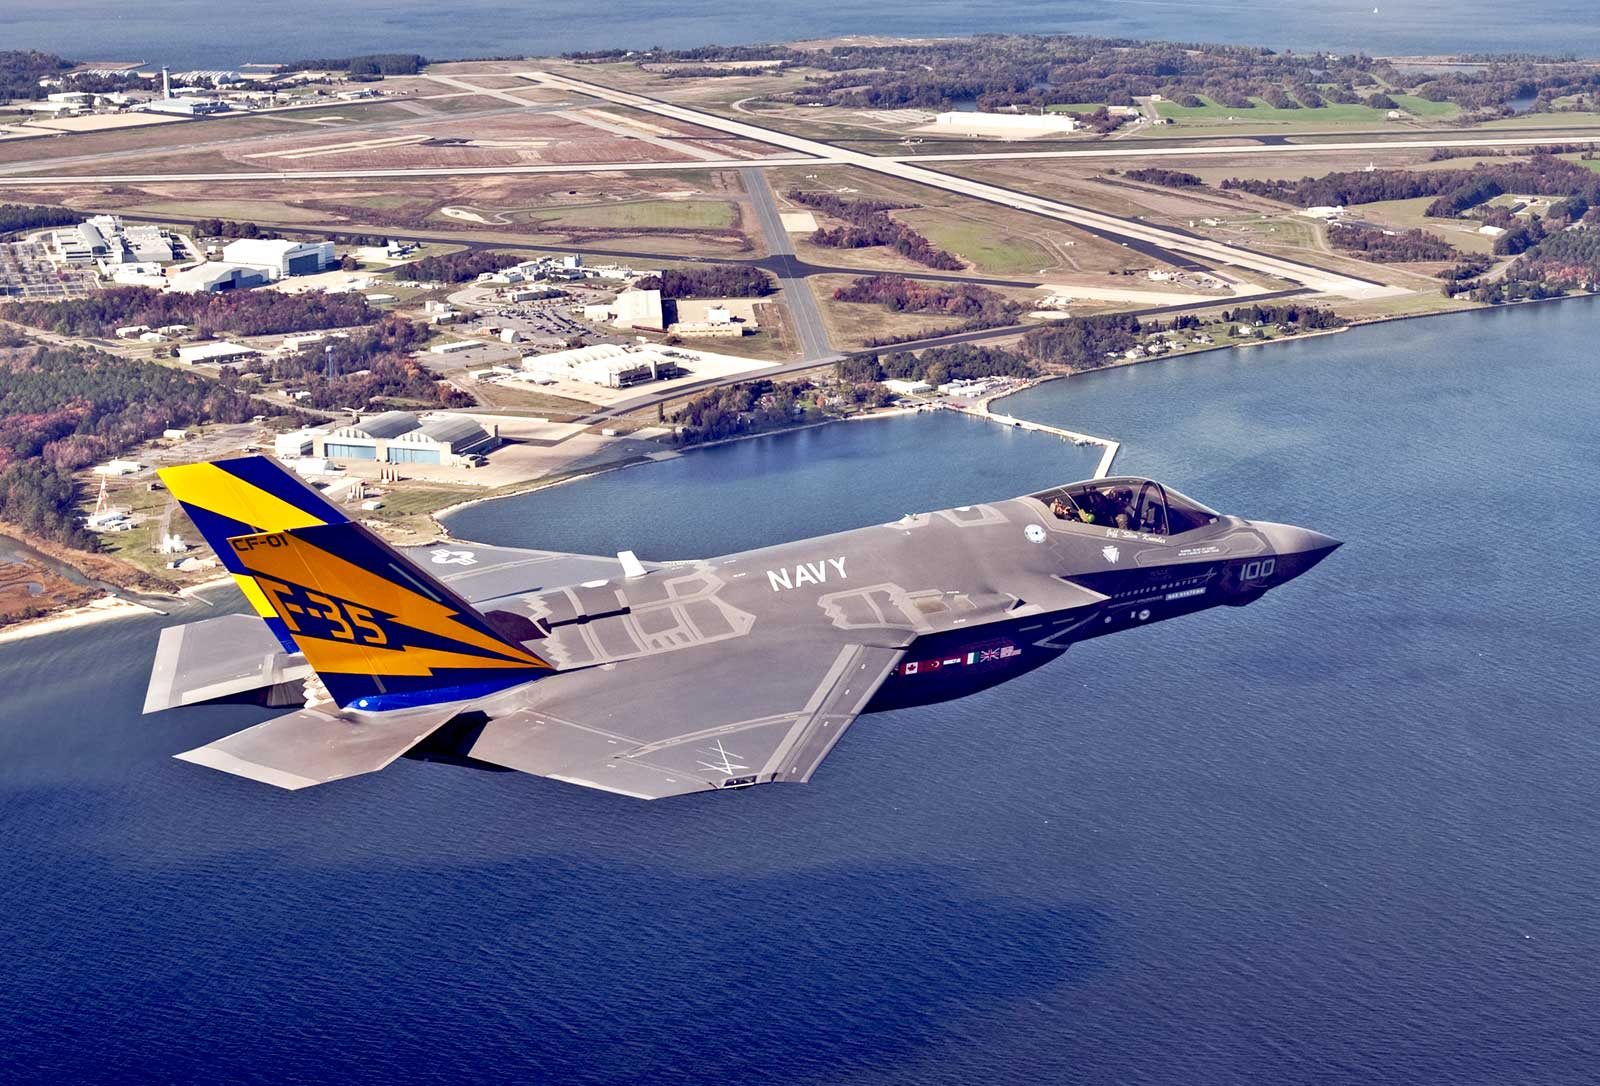 Click pic for hi resF 35C: Bigger wing with tail hookUS Navy 1704